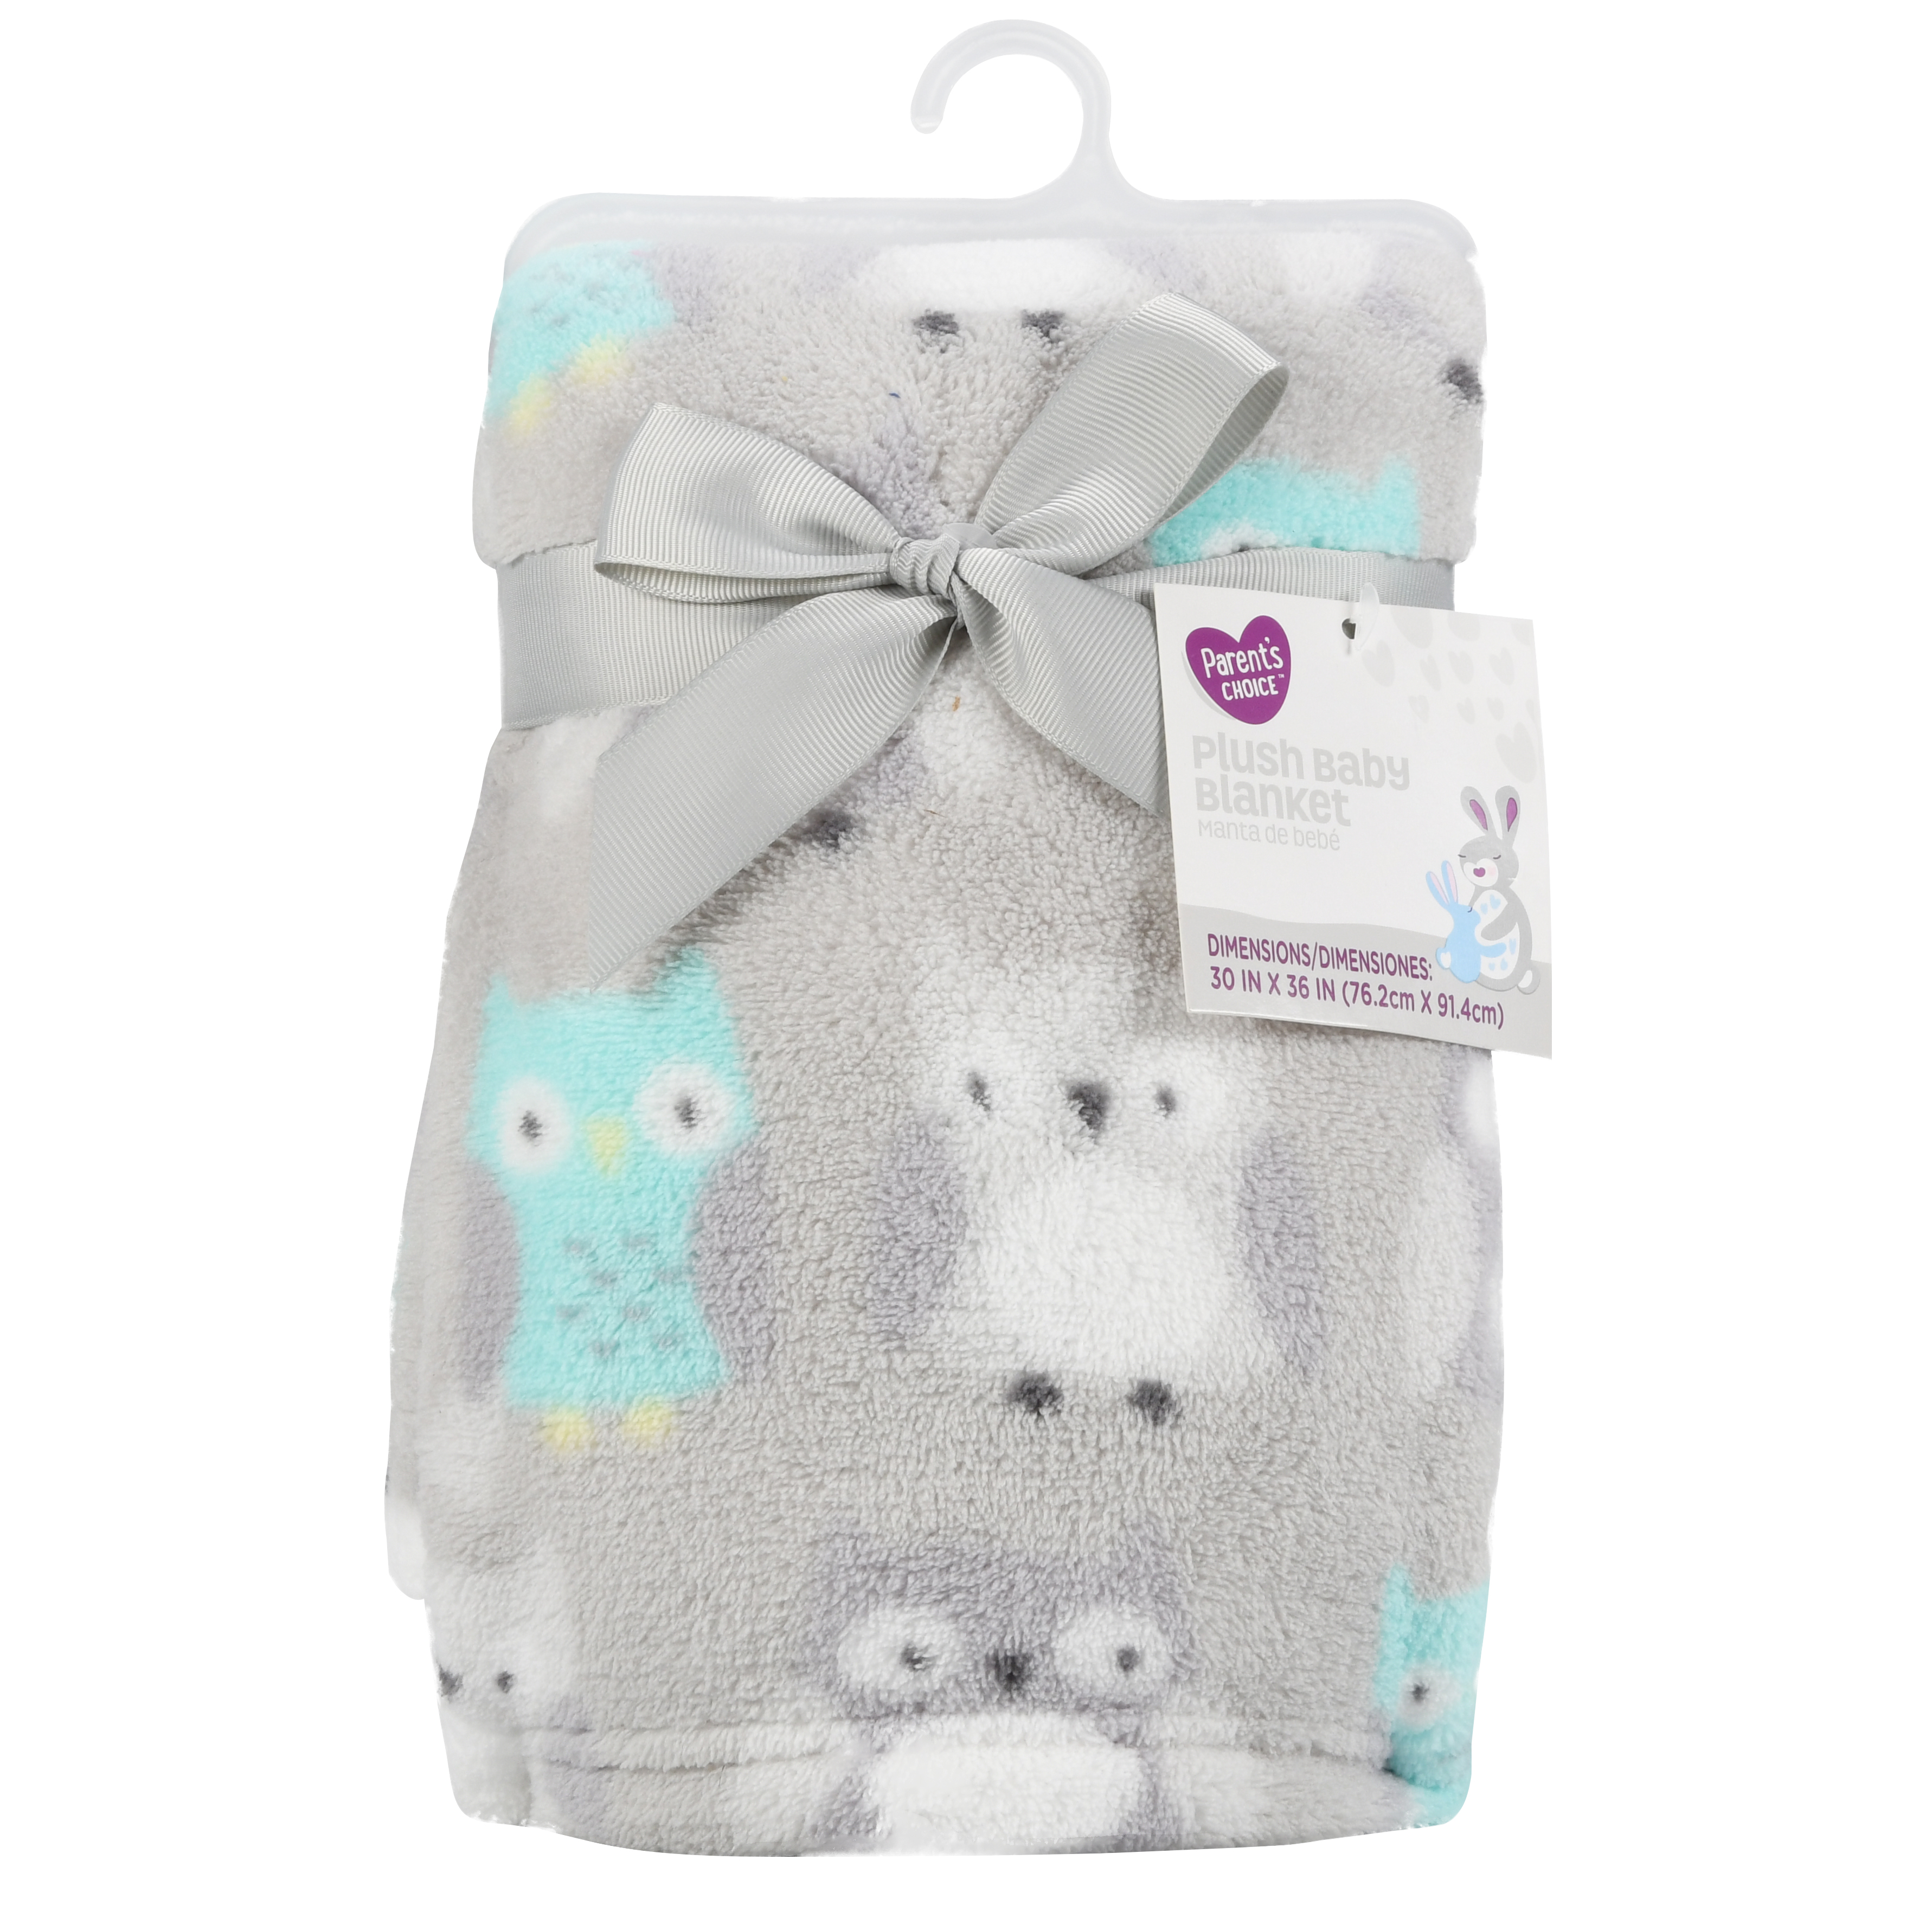 Parent's Choice Plush Baby Blanket, Gray Owl, 1 Pack